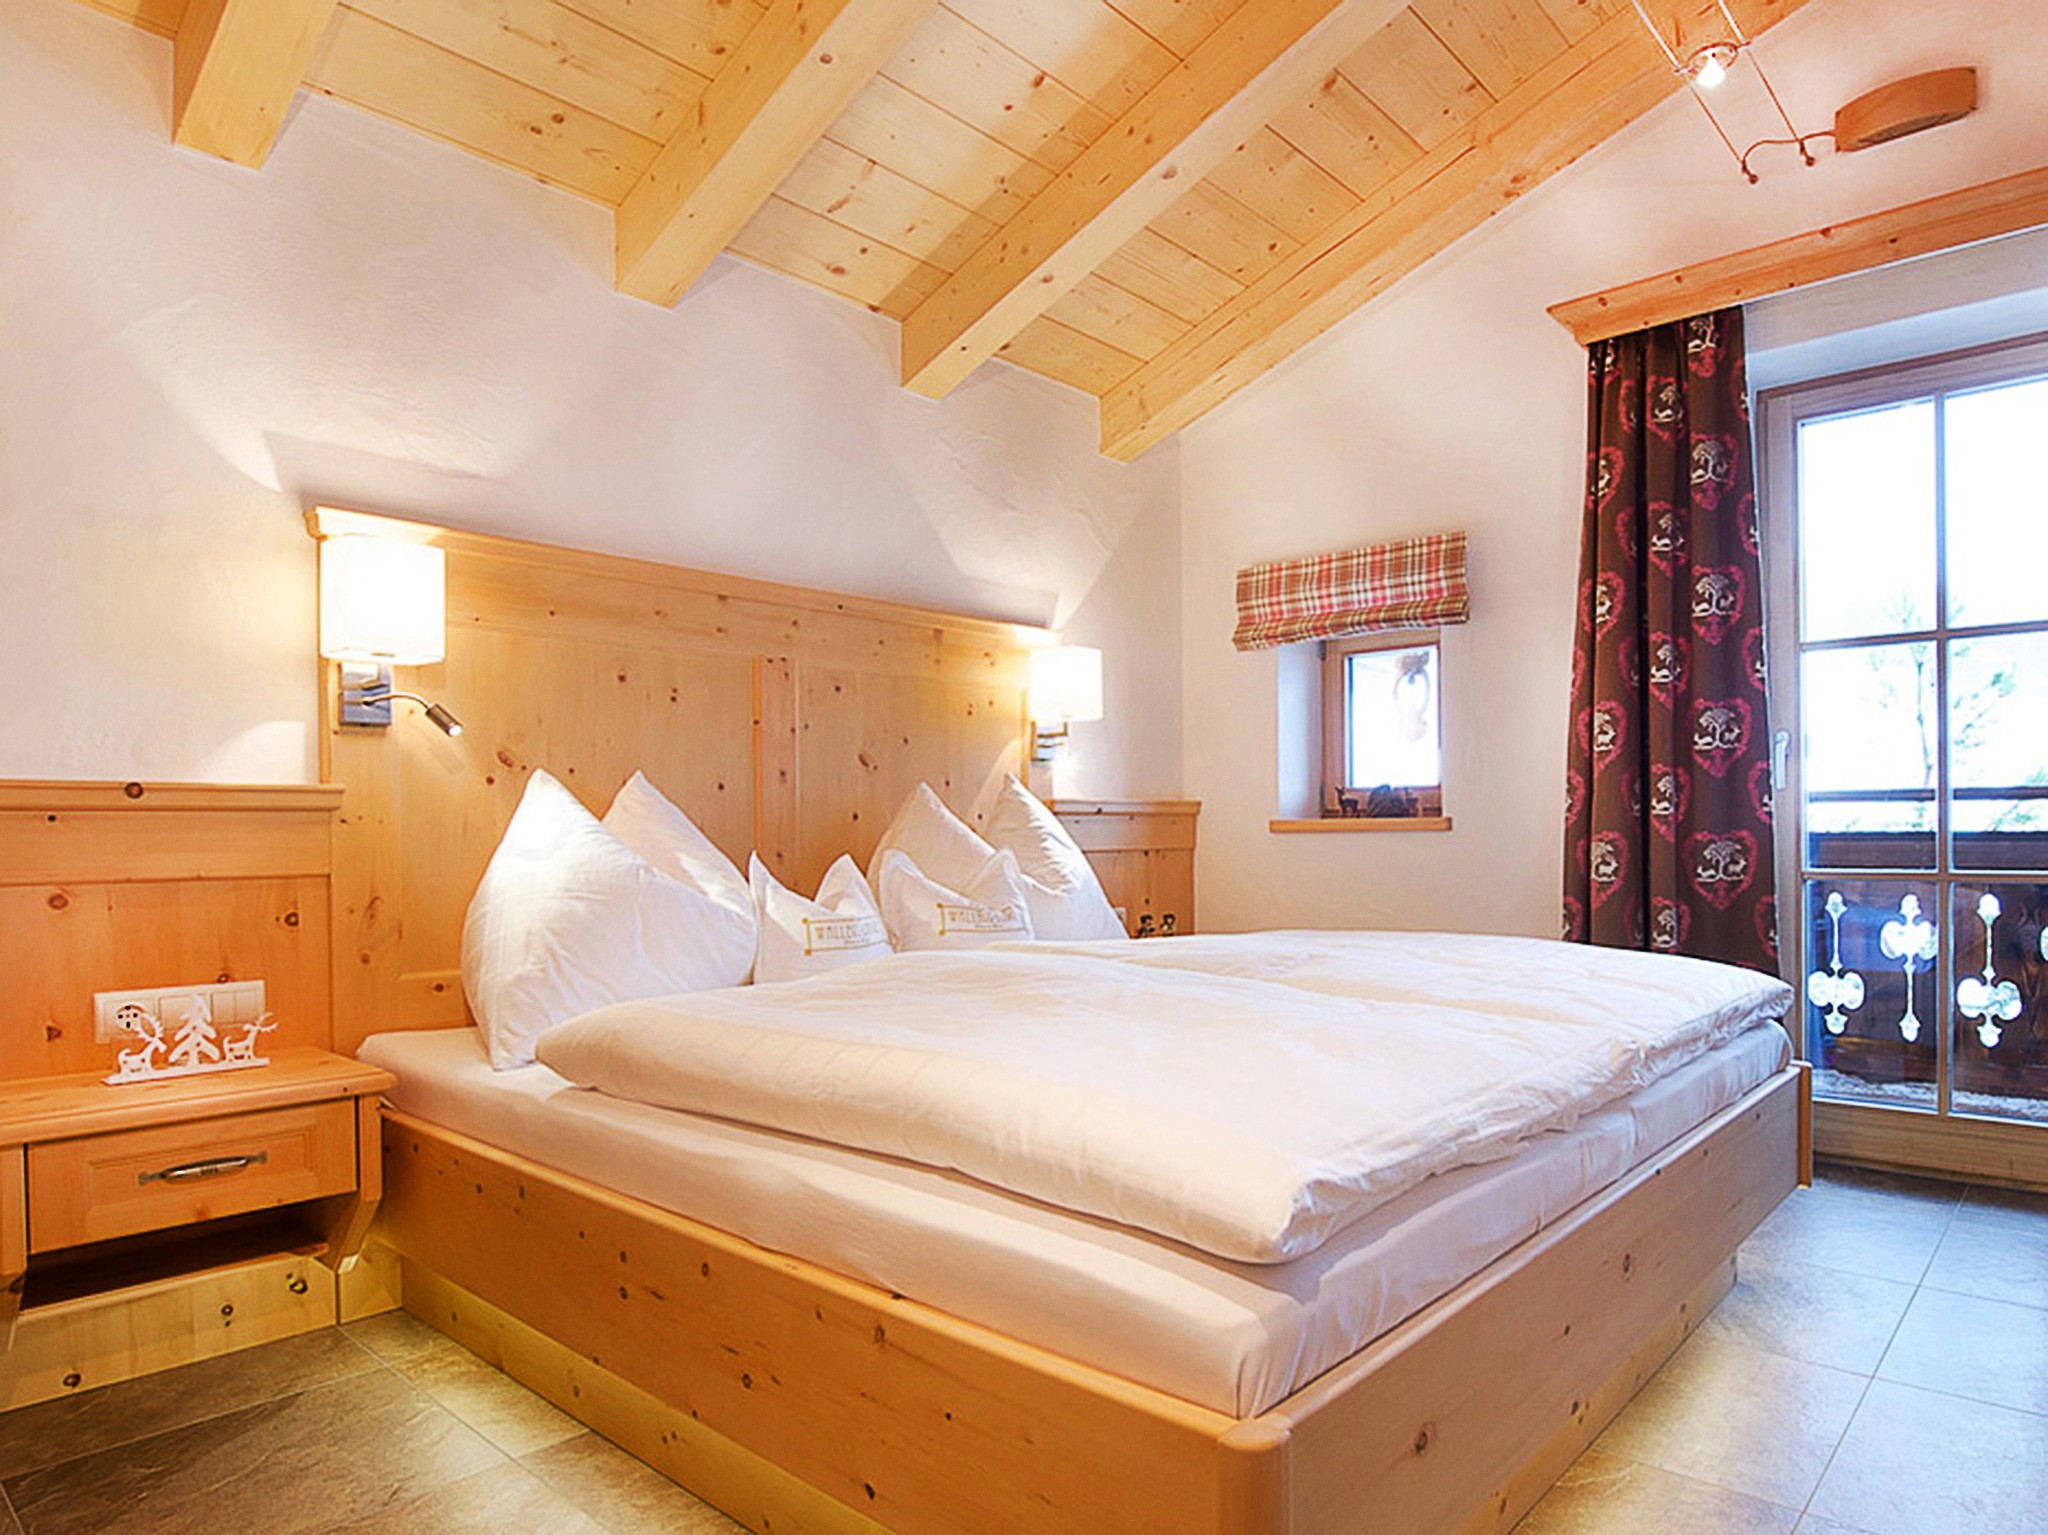 Panorama Hütte Saalbach - bedroom